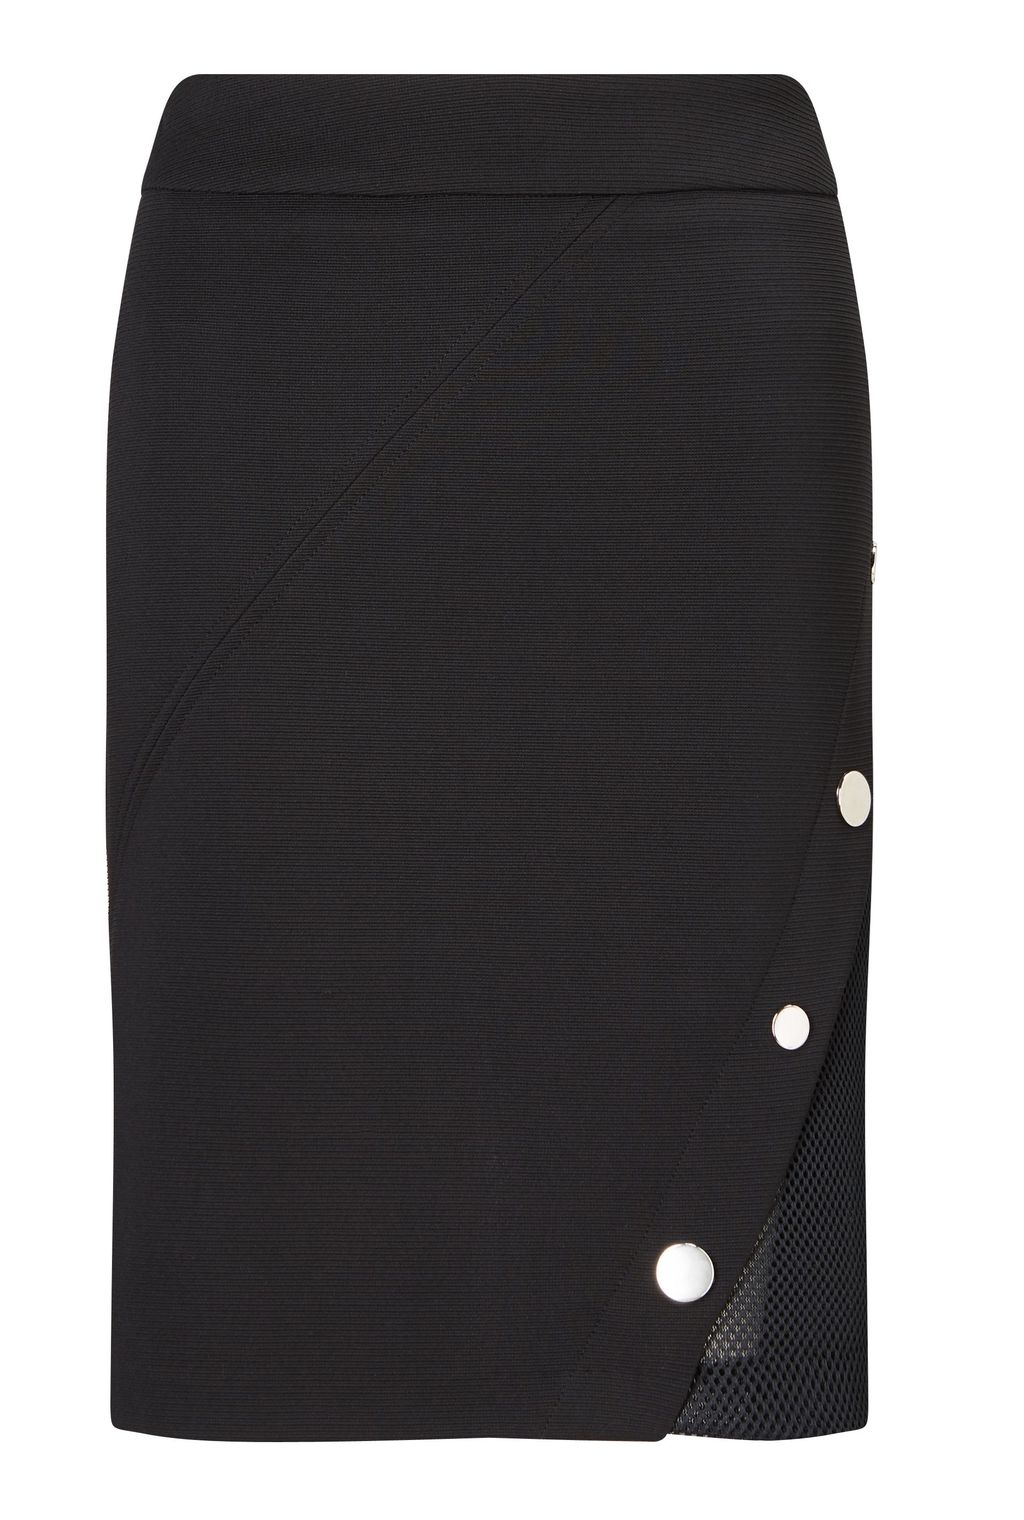 Studs Tailored Skirt, Black - pattern: plain; style: straight; fit: tailored/fitted; waist: mid/regular rise; predominant colour: black; occasions: evening; length: just above the knee; fibres: polyester/polyamide - stretch; pattern type: fabric; texture group: woven light midweight; embellishment: studs; season: a/w 2016; wardrobe: event